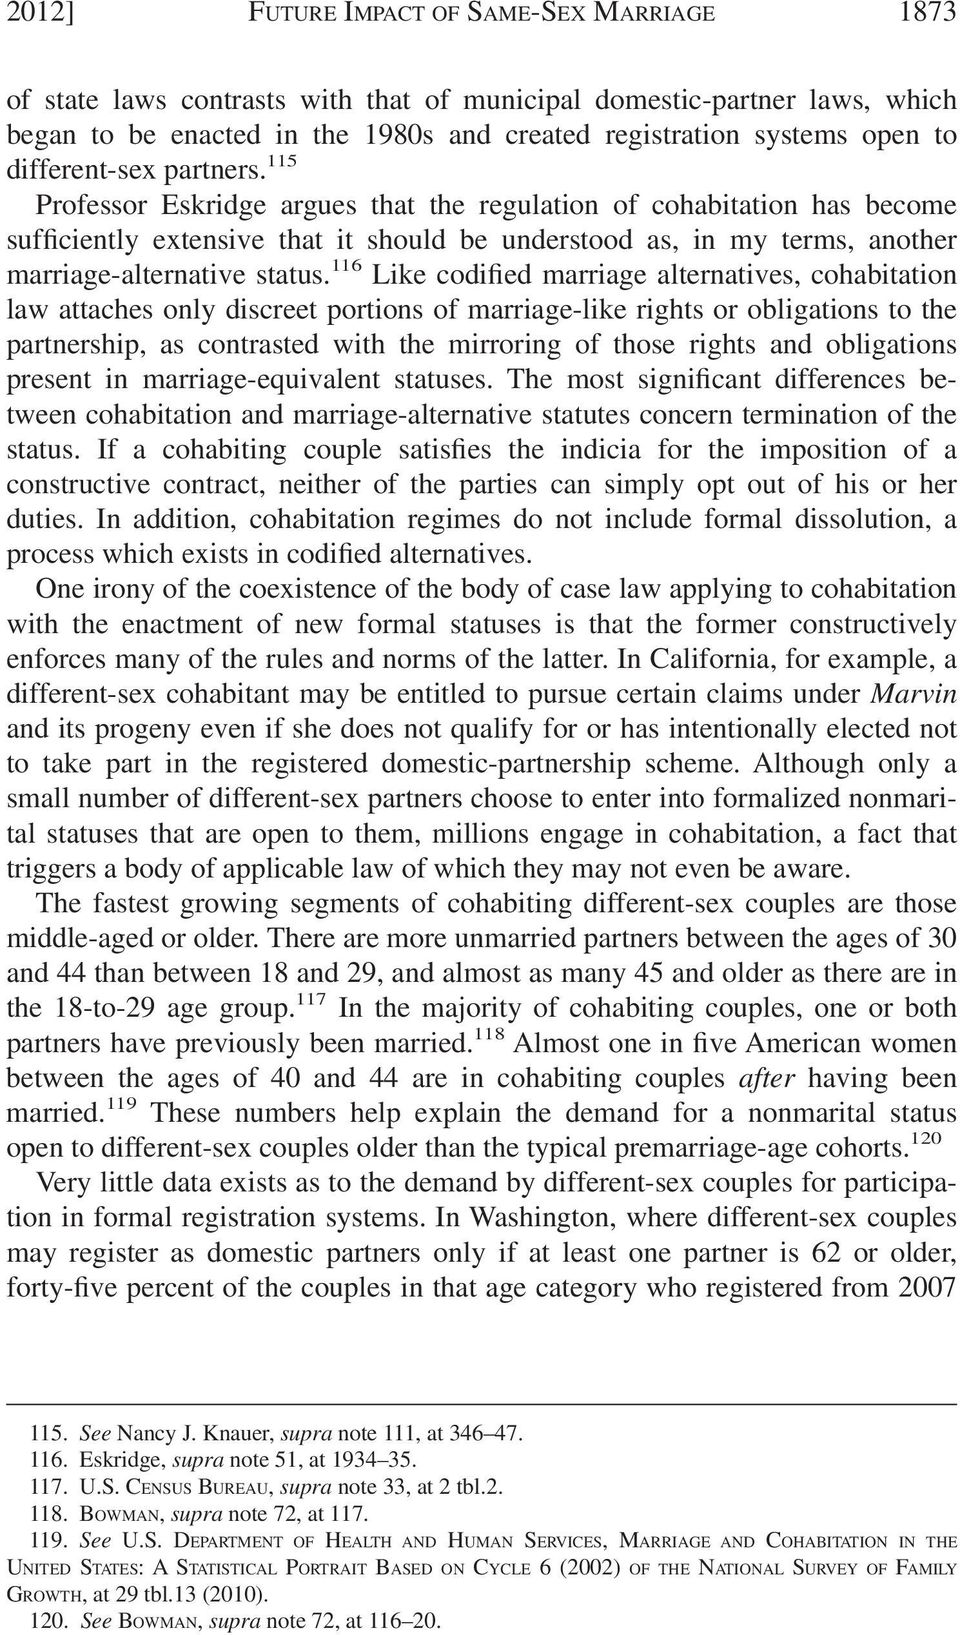 115 Professor Eskridge argues that the regulation of cohabitation has become sufficiently extensive that it should be understood as, in my terms, another marriage-alternative status.